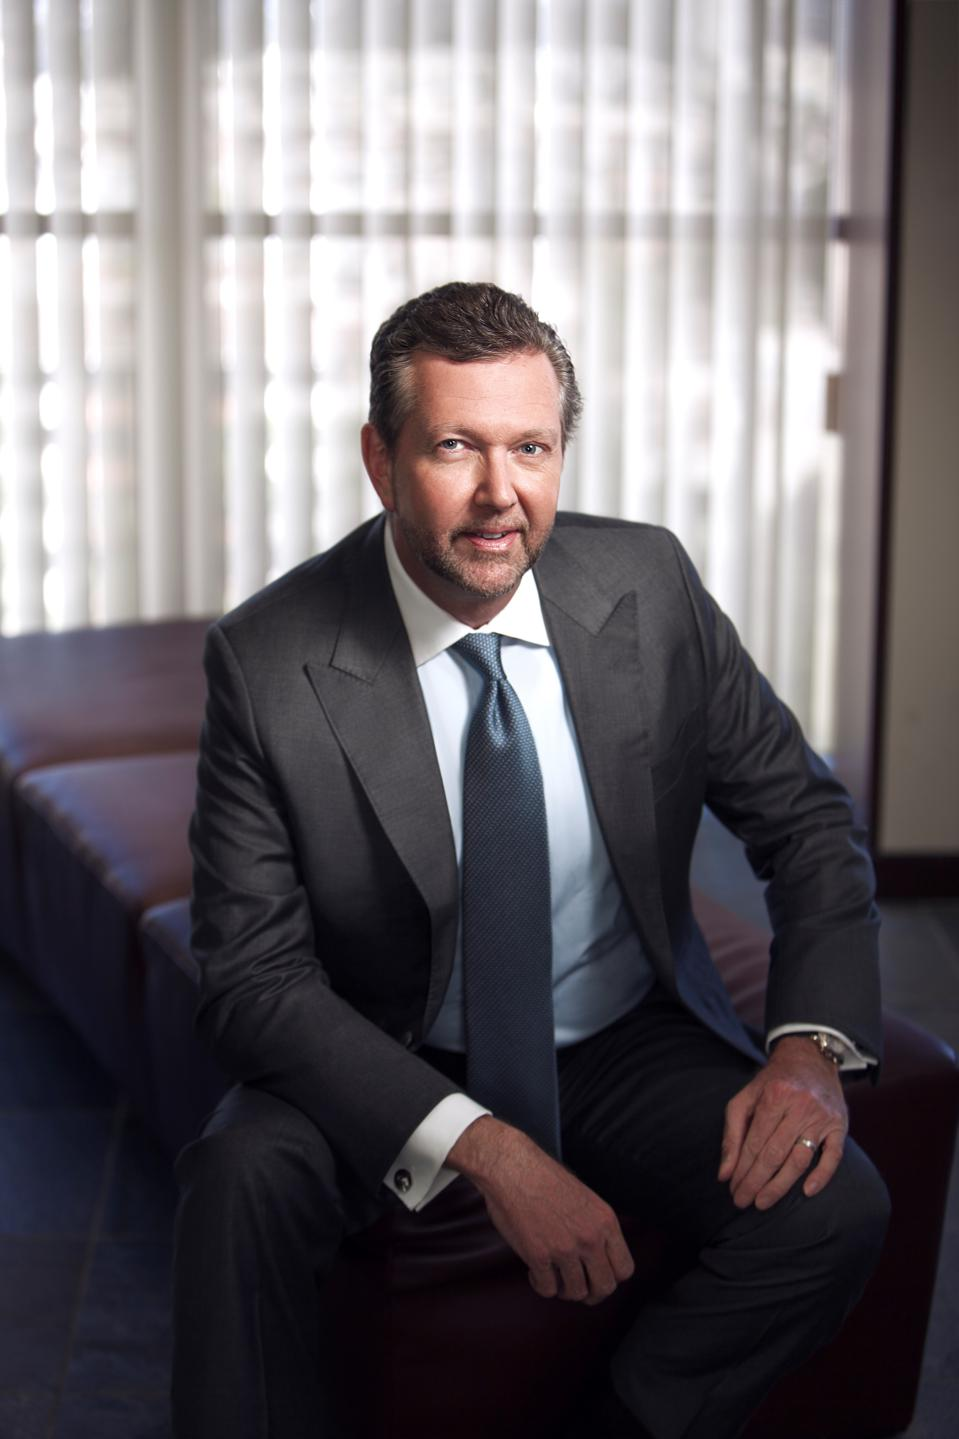 Philippe Hartl, Managing Director and Private Wealth Advisor at Merrill Private Wealth Management